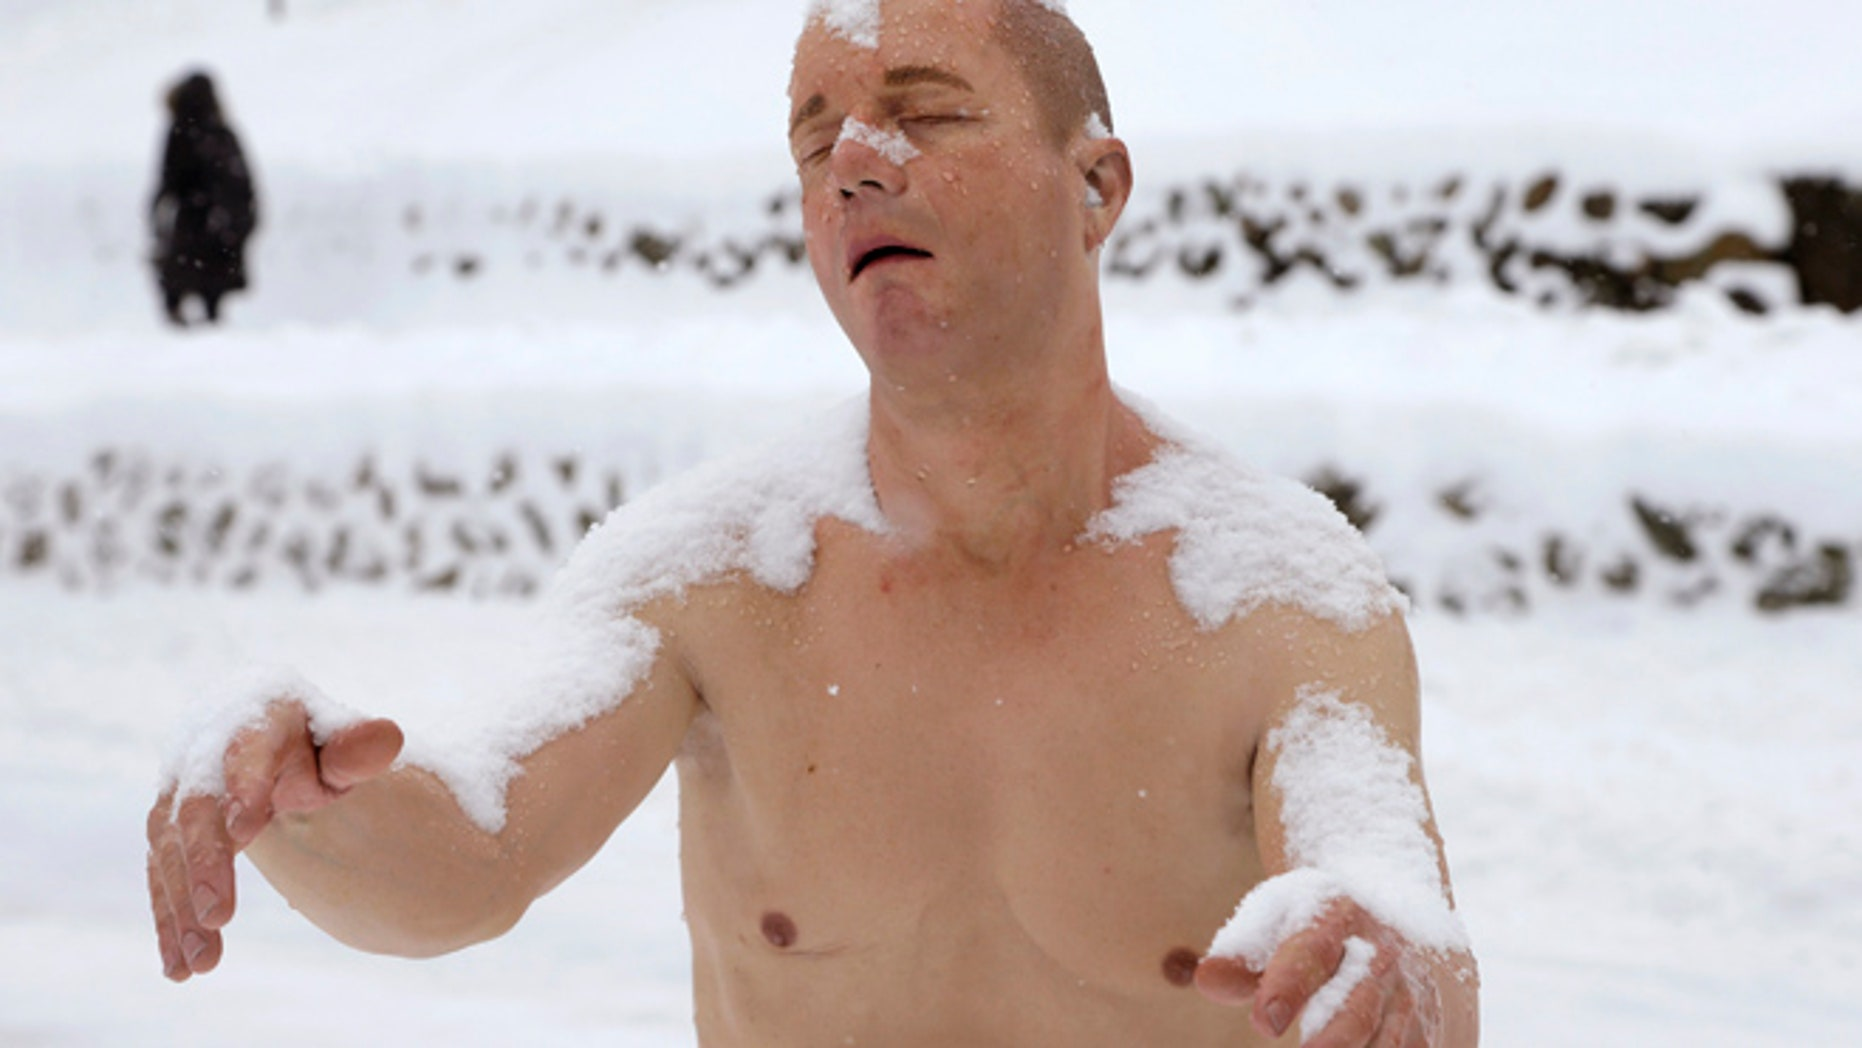 Feb. 5: A statue of a man sleepwalking in his underpants is surrounded by snow on the campus of Wellesley College, in Wellesley, Mass.